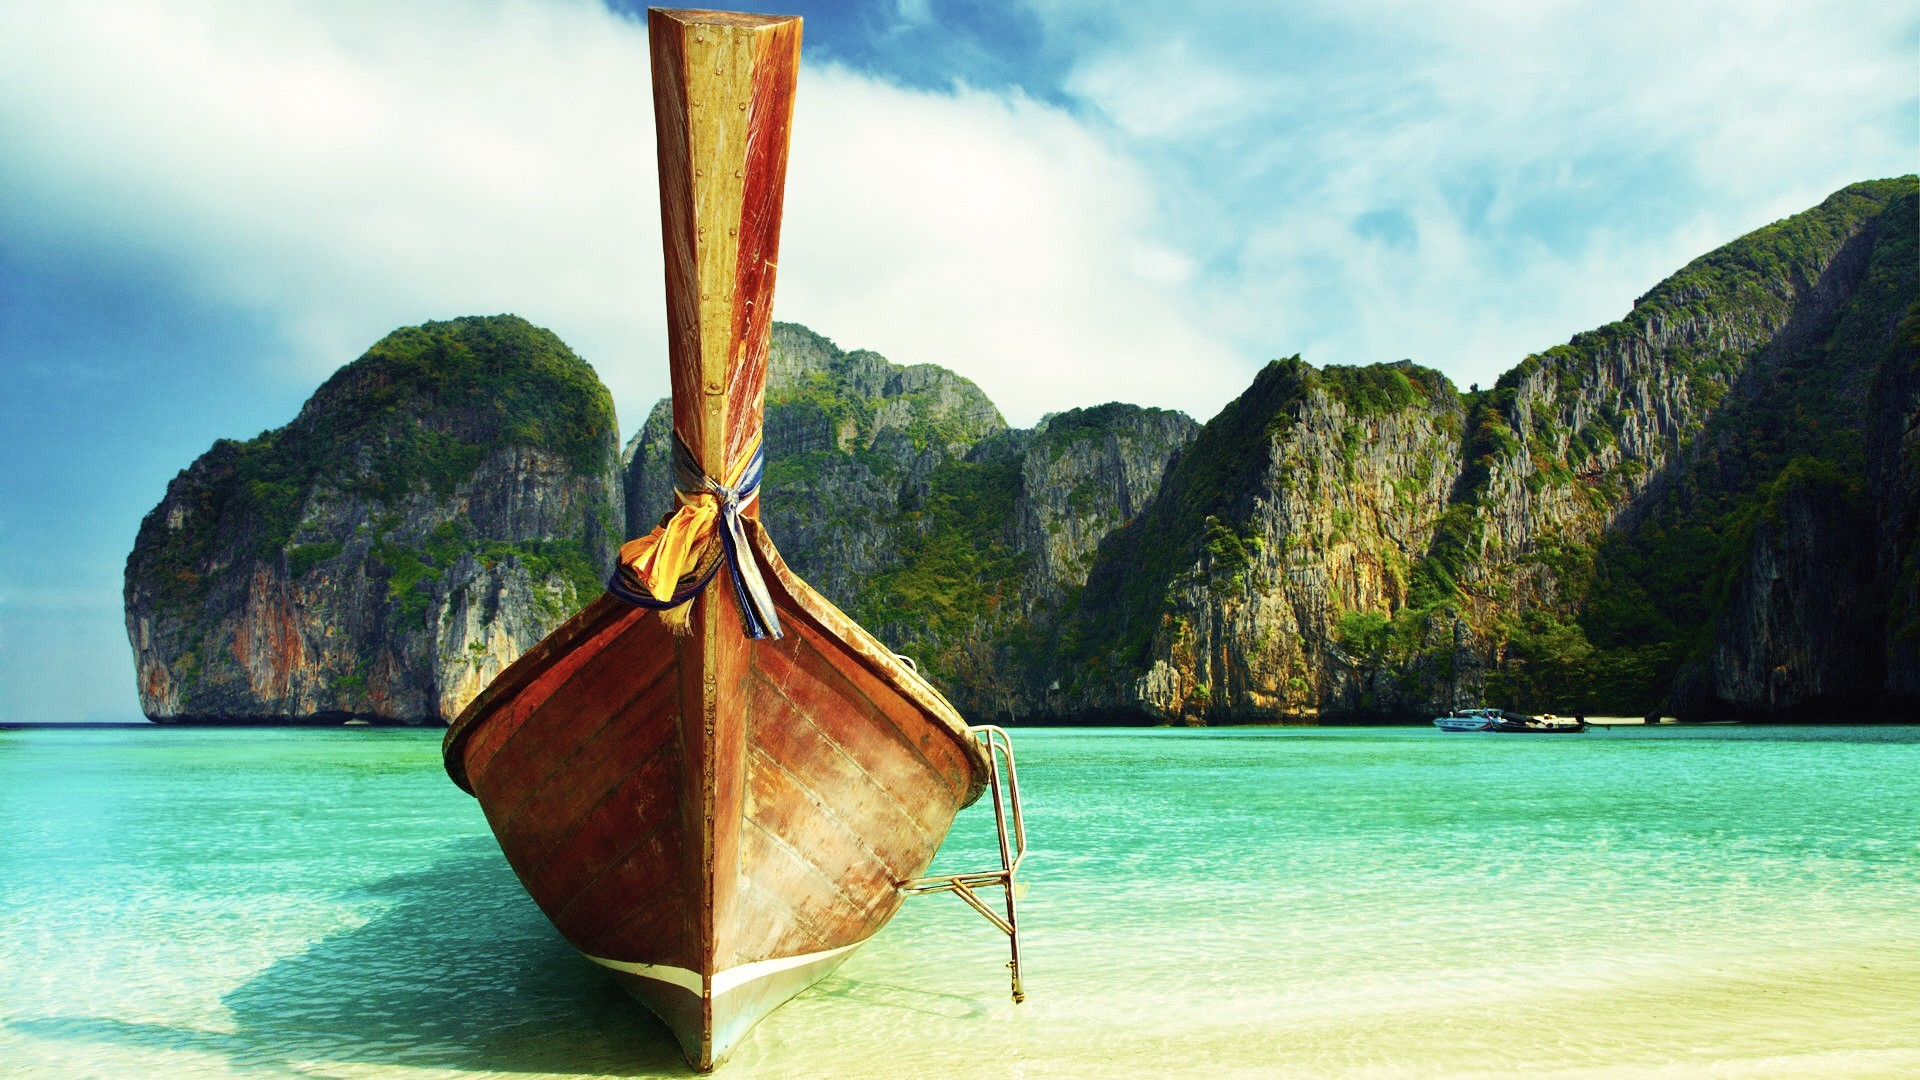 Thailand wallpapers best wallpapers for Fun wallpaper for walls